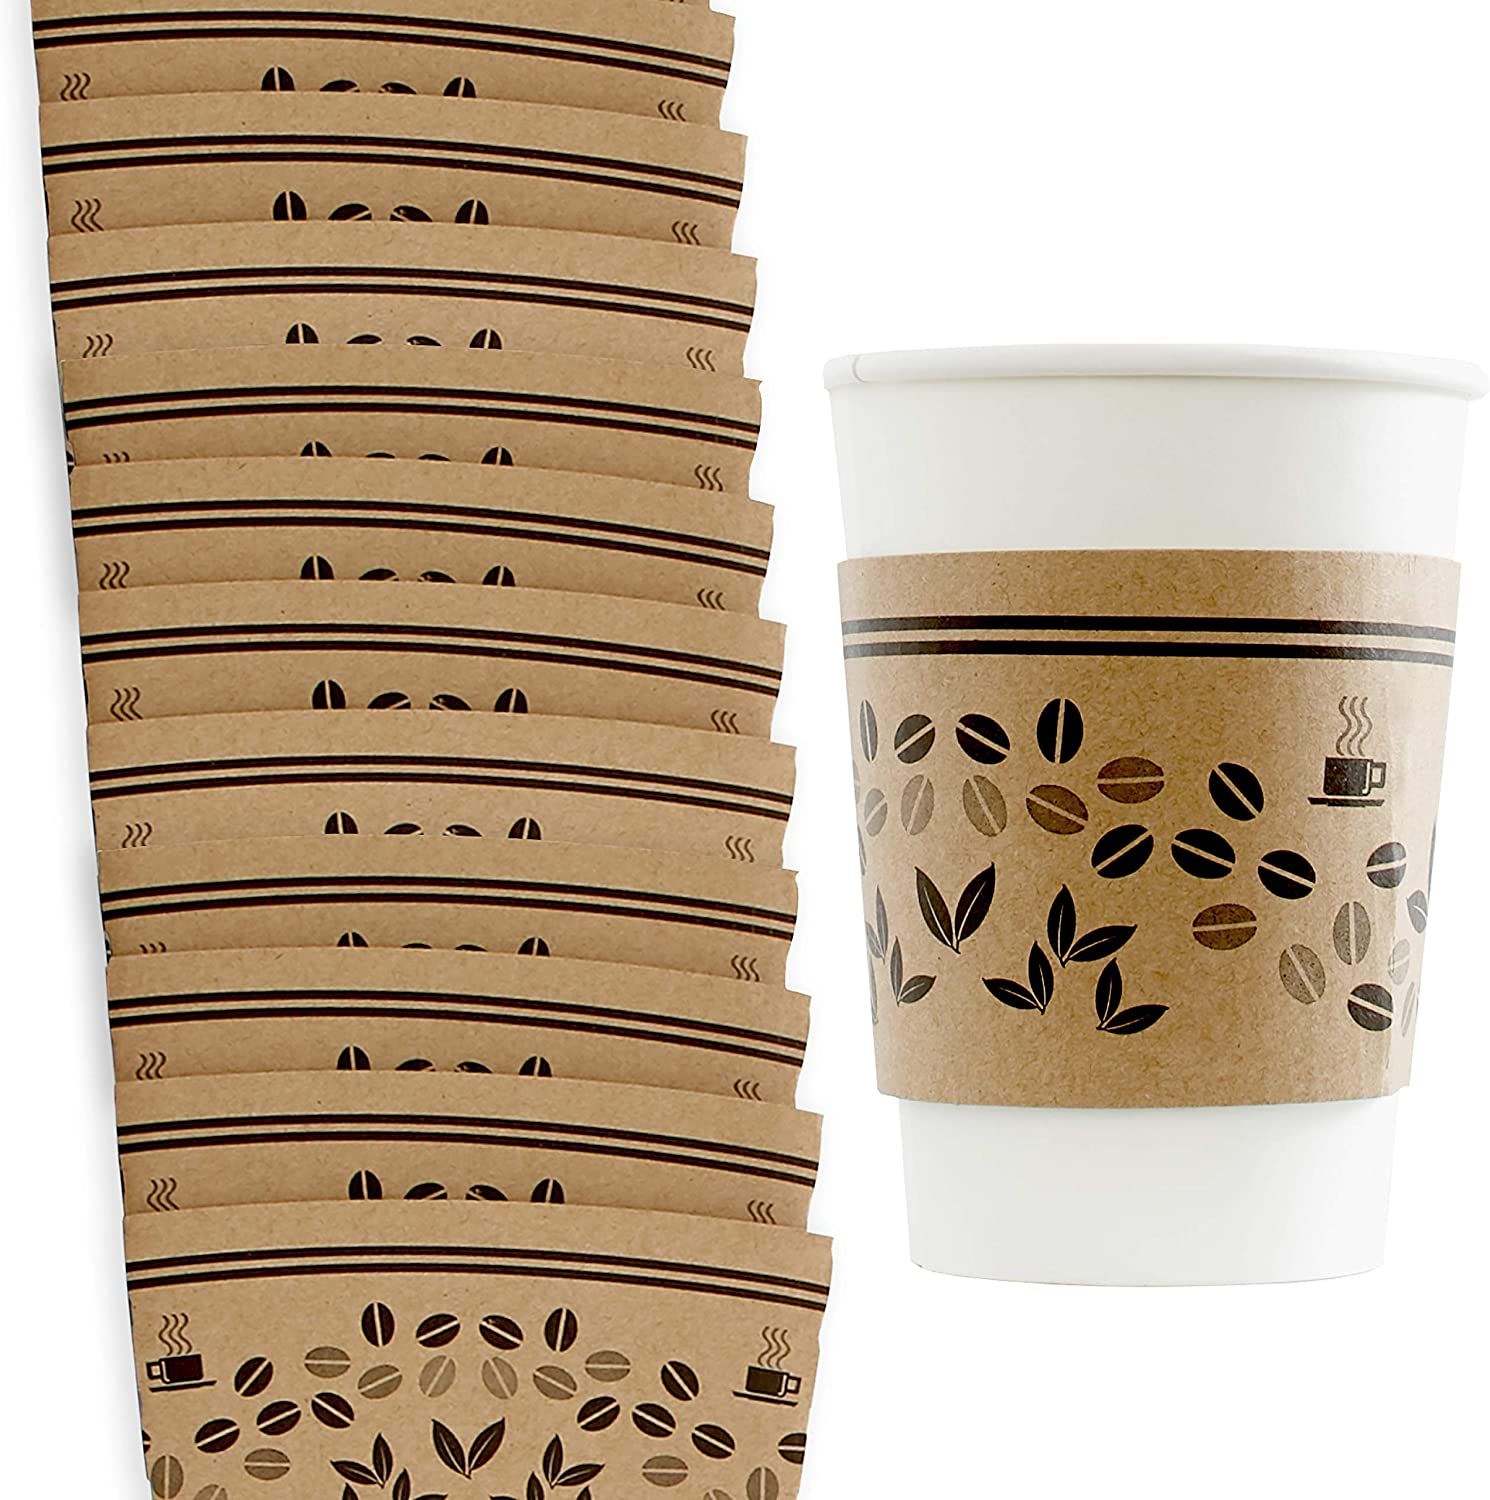 Versatile, Recyclable Coffee Cup Sleeves 10-20oz 50pk. Eco-Friendly, Disposable Cardboard Sleeve, Insulated for Hot Drinks. Fits 10 12 16 20 Ounce Togo Paper Cups. Perfect for Cafes, Shops and Office